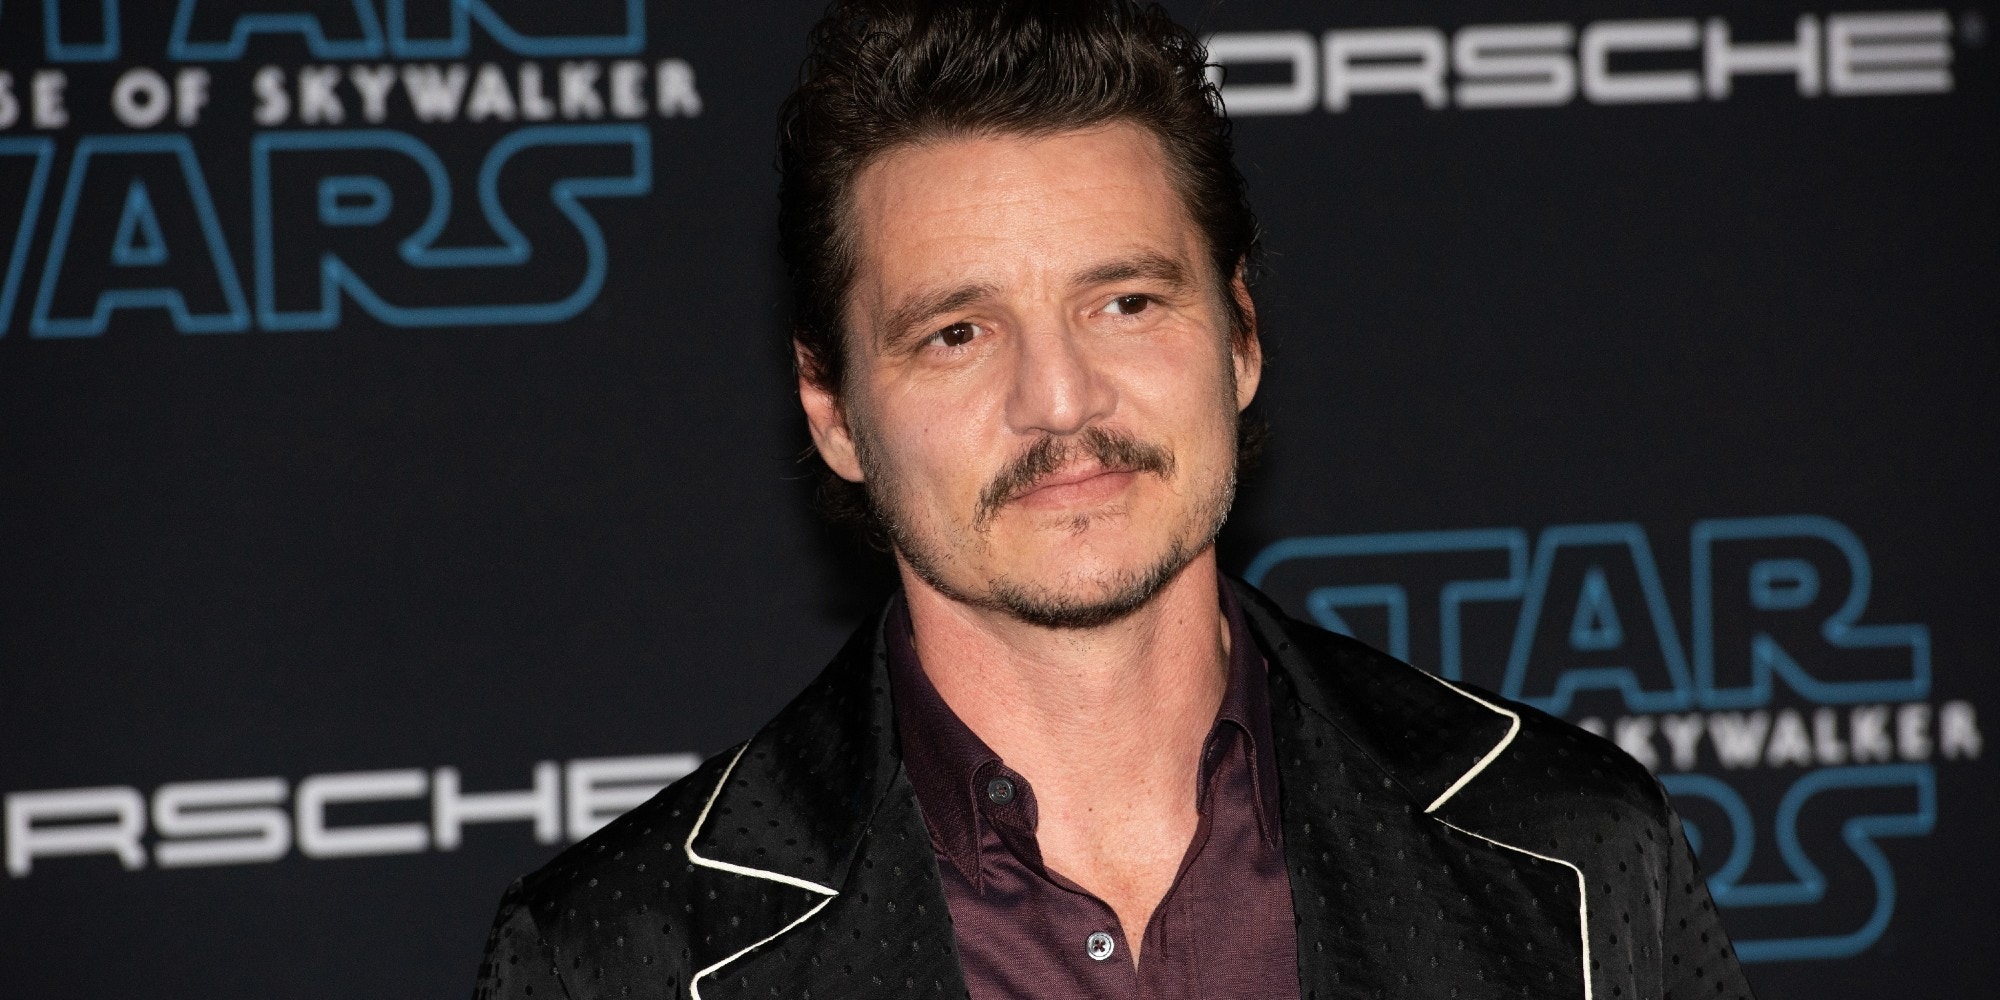 Conservatives are now trying to get Pedro Pascal fired for Holocaust comparison